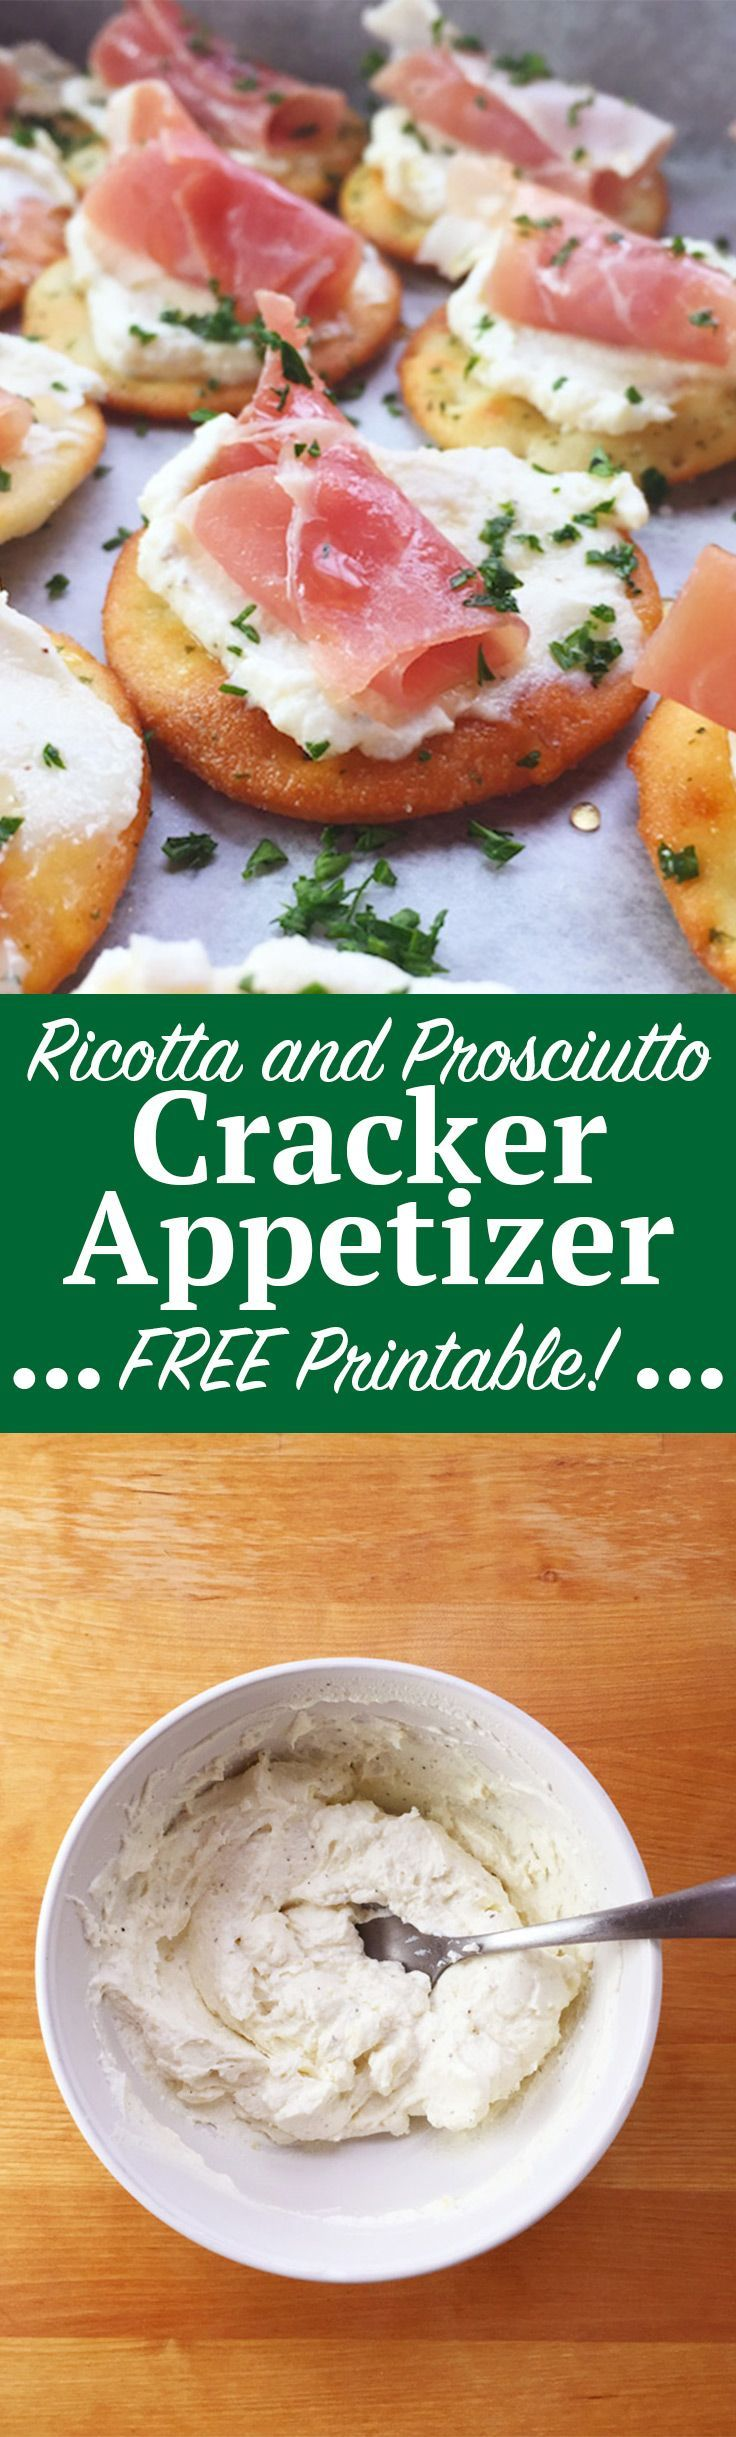 Ricotta and Prosciutto Cracker Appetizer recipe, perfect for your next holiday party! This is a no-bake recipe that costs under $10 and takes less than 20 minutes to make. Wow holiday party goers with creamy ricotta, prosciutto and a light honey drizzle over every cracker. Click through for the full recipe and a FREE printable recipe and resource list! | http://SeasonlyCreations.com | @SeasonlyBlog #sponsored